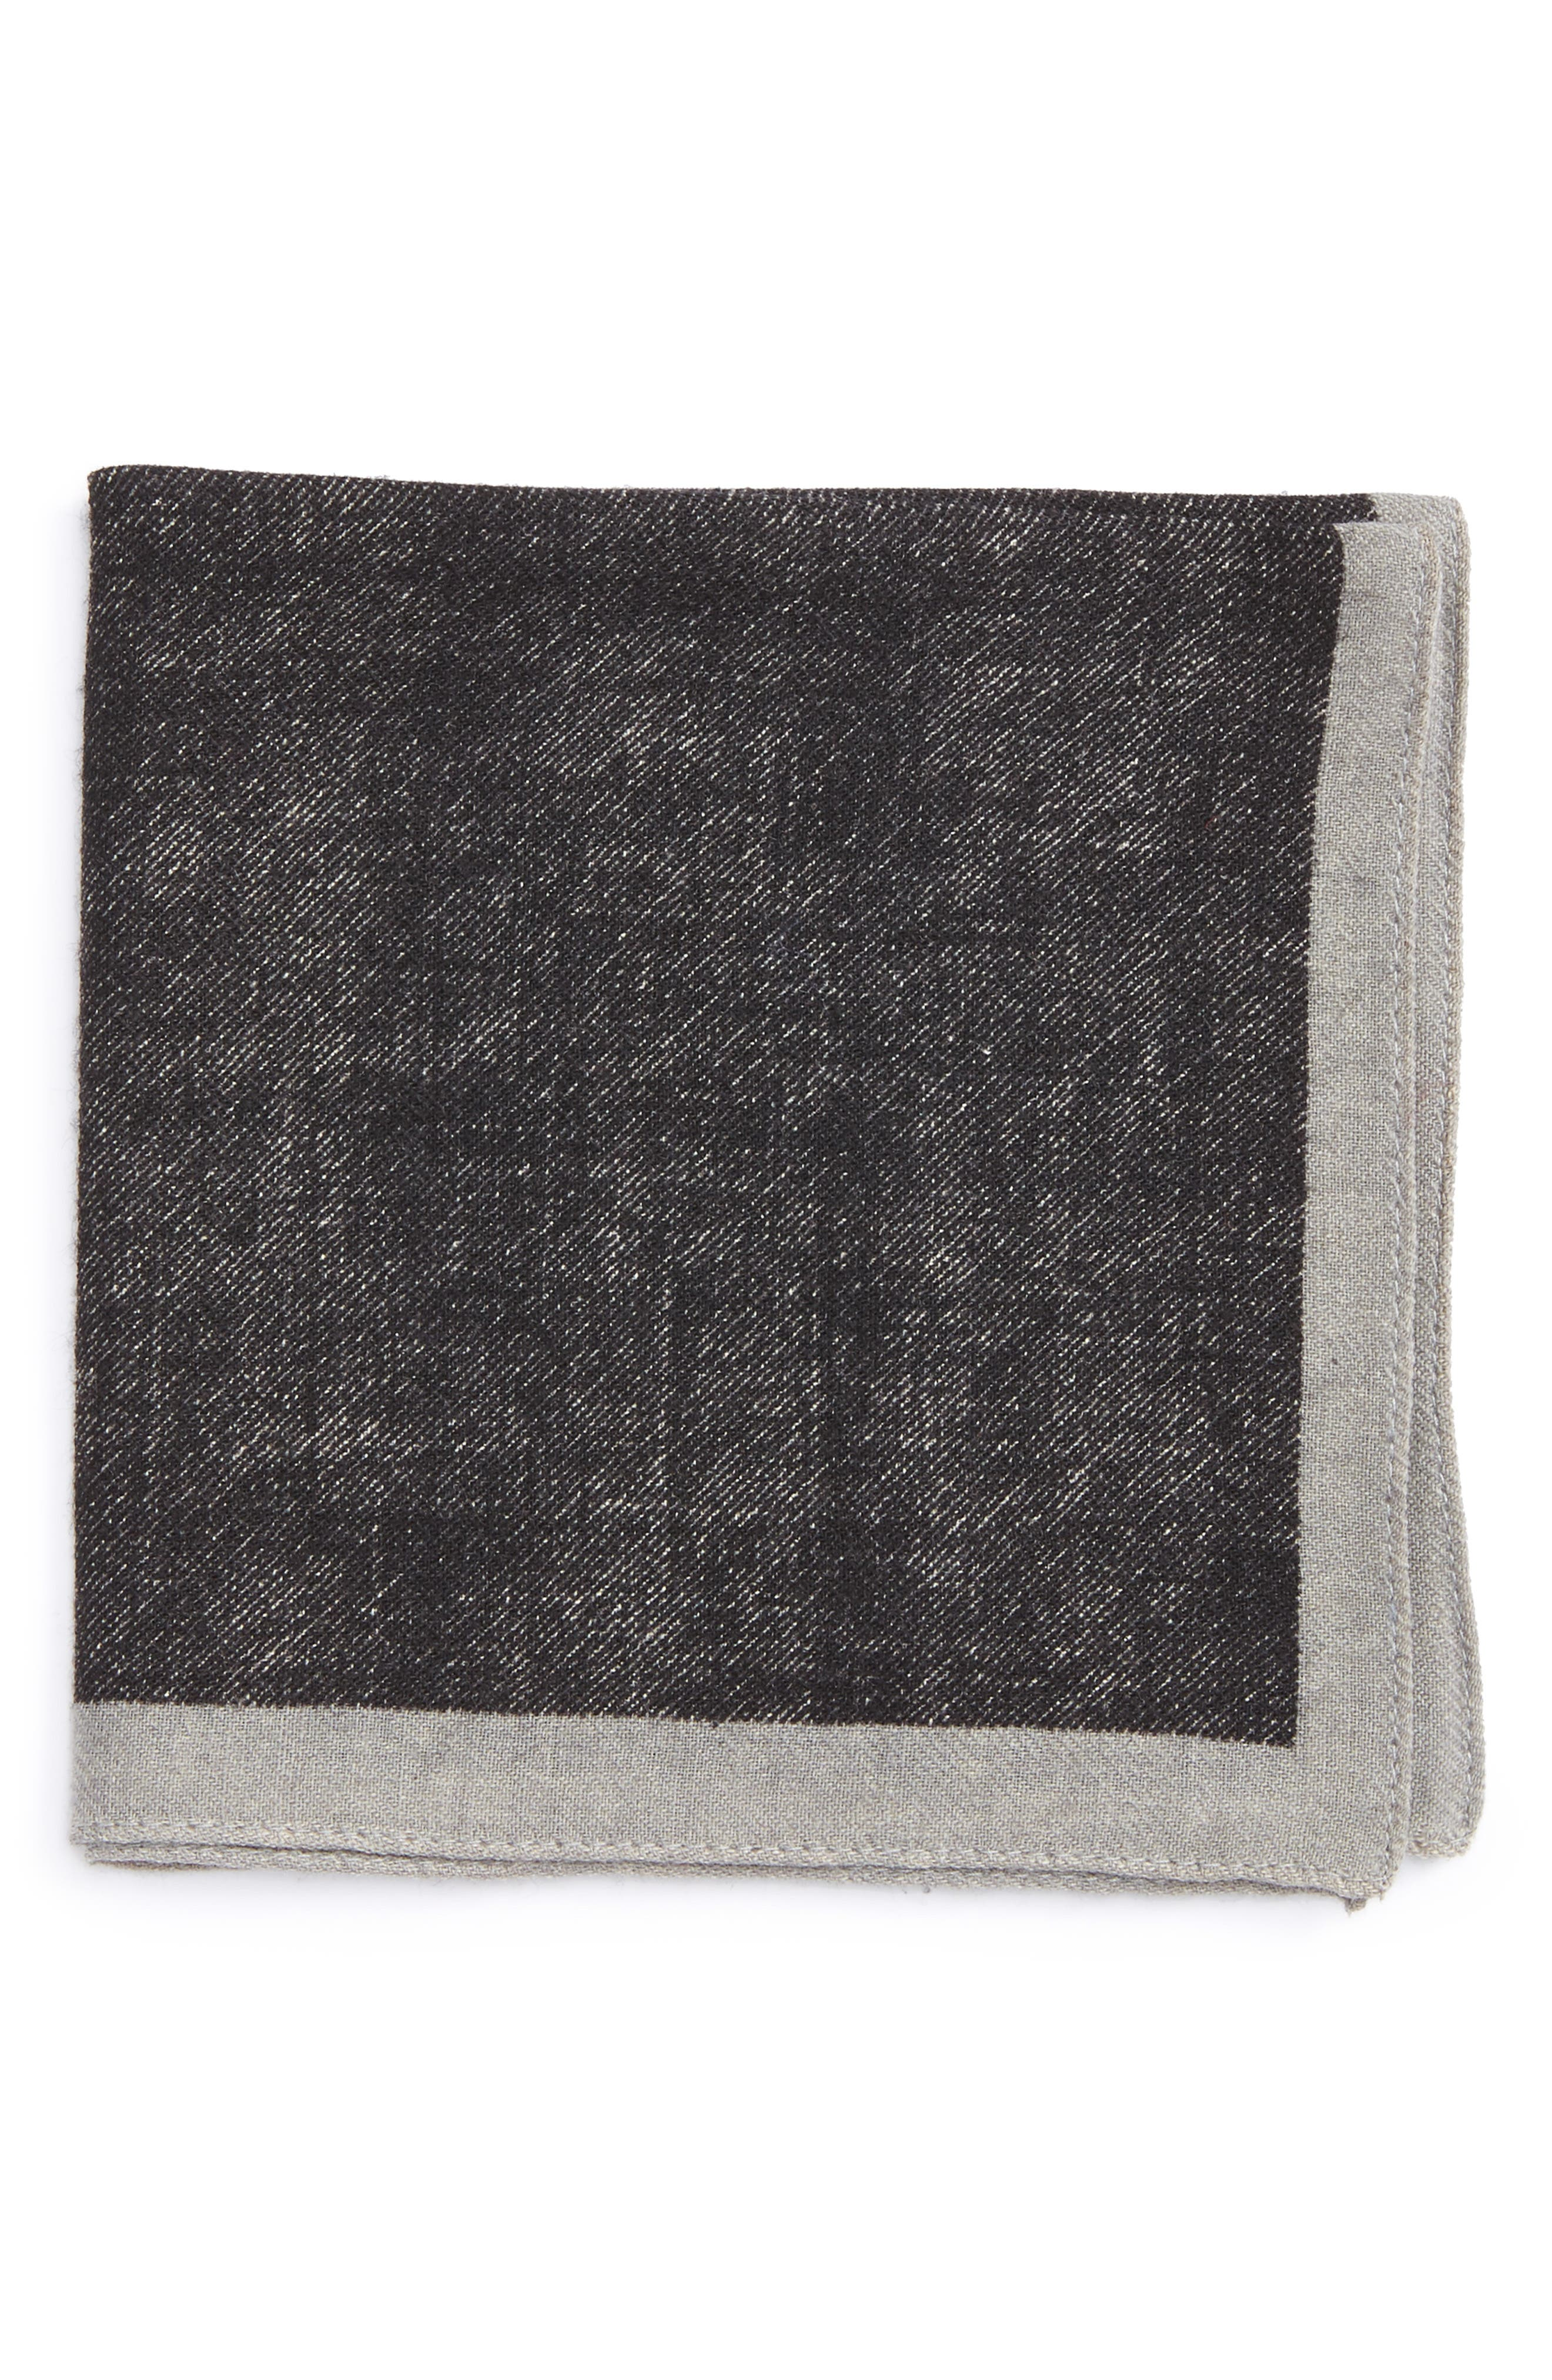 Solid Wool Pocket Square,                         Main,                         color, Grey